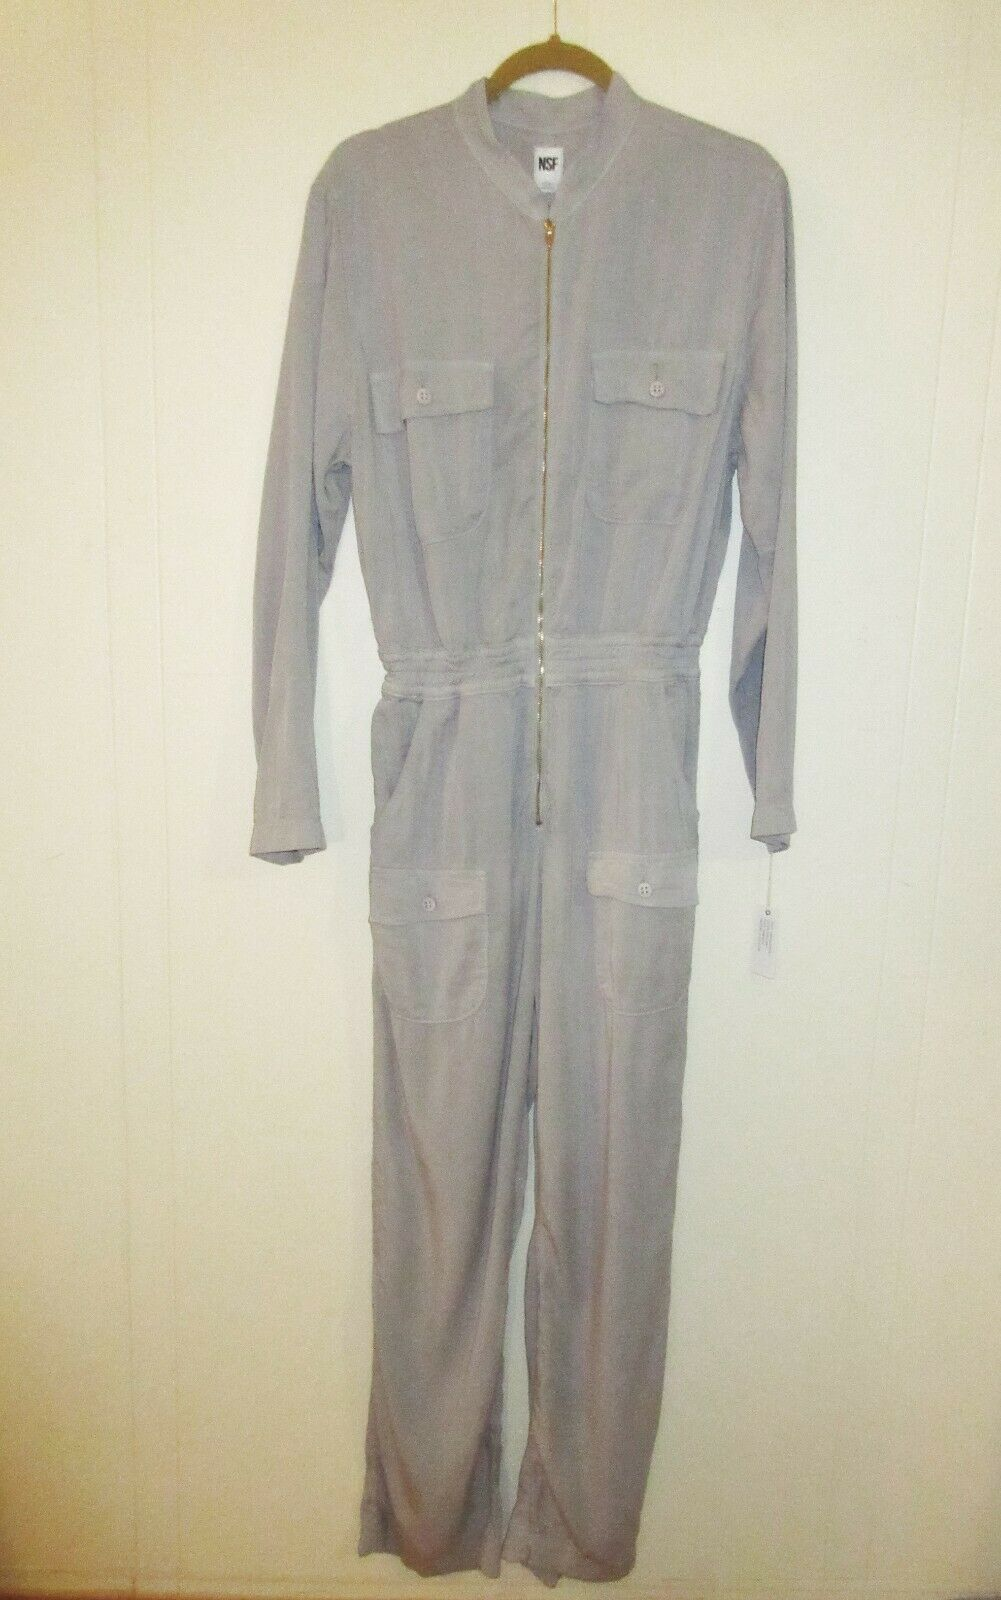 NSF Shell Grey Cotton Zip Front JUMPSUIT Small NWT